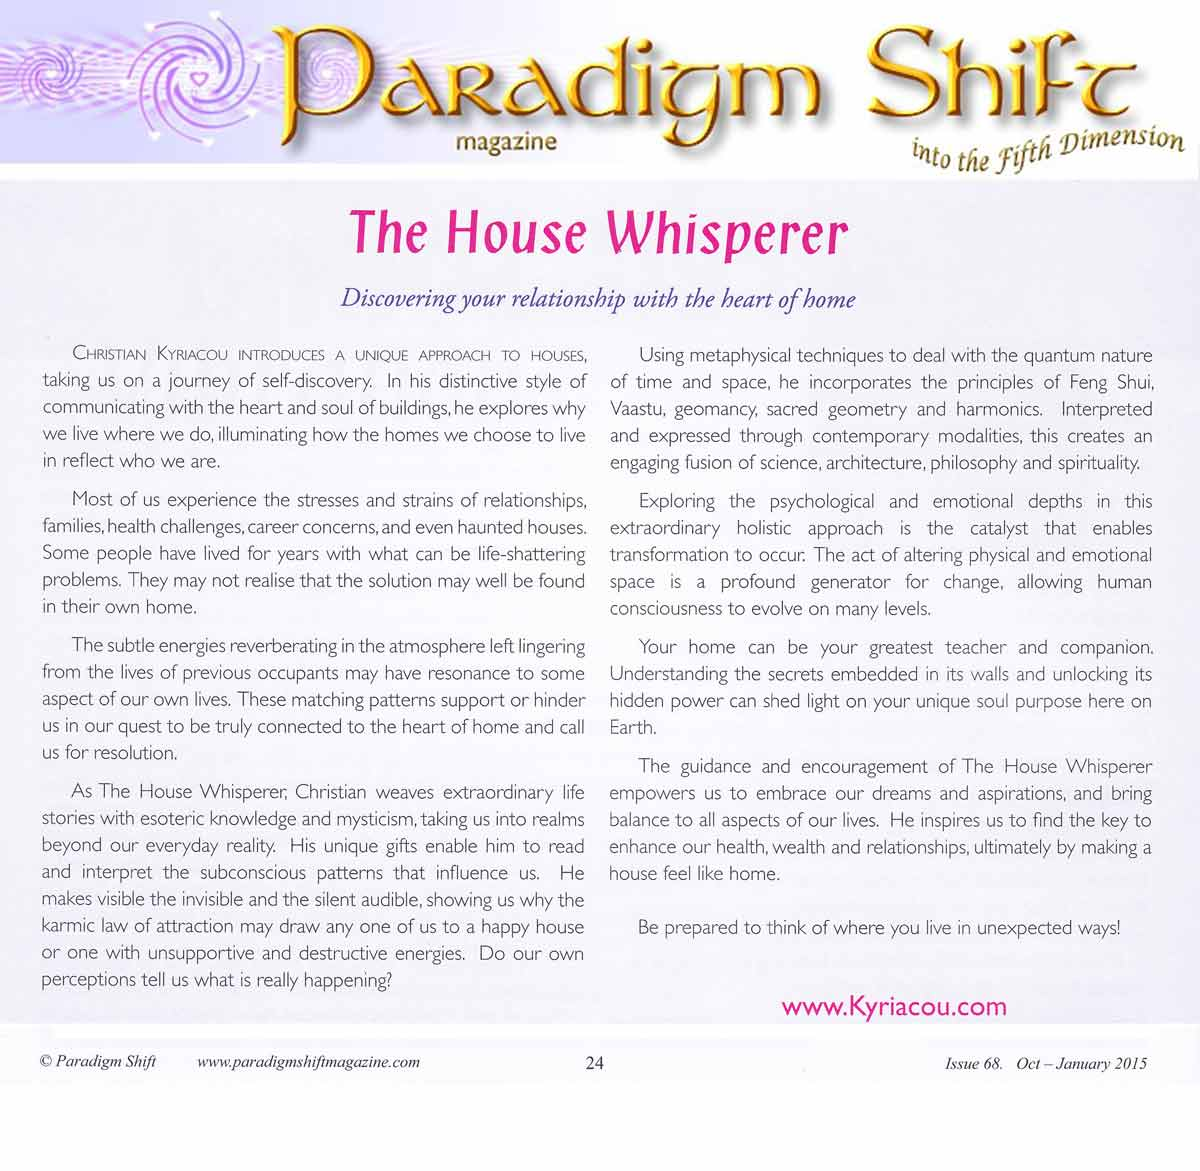 Paradign-Shift-Article.jpg